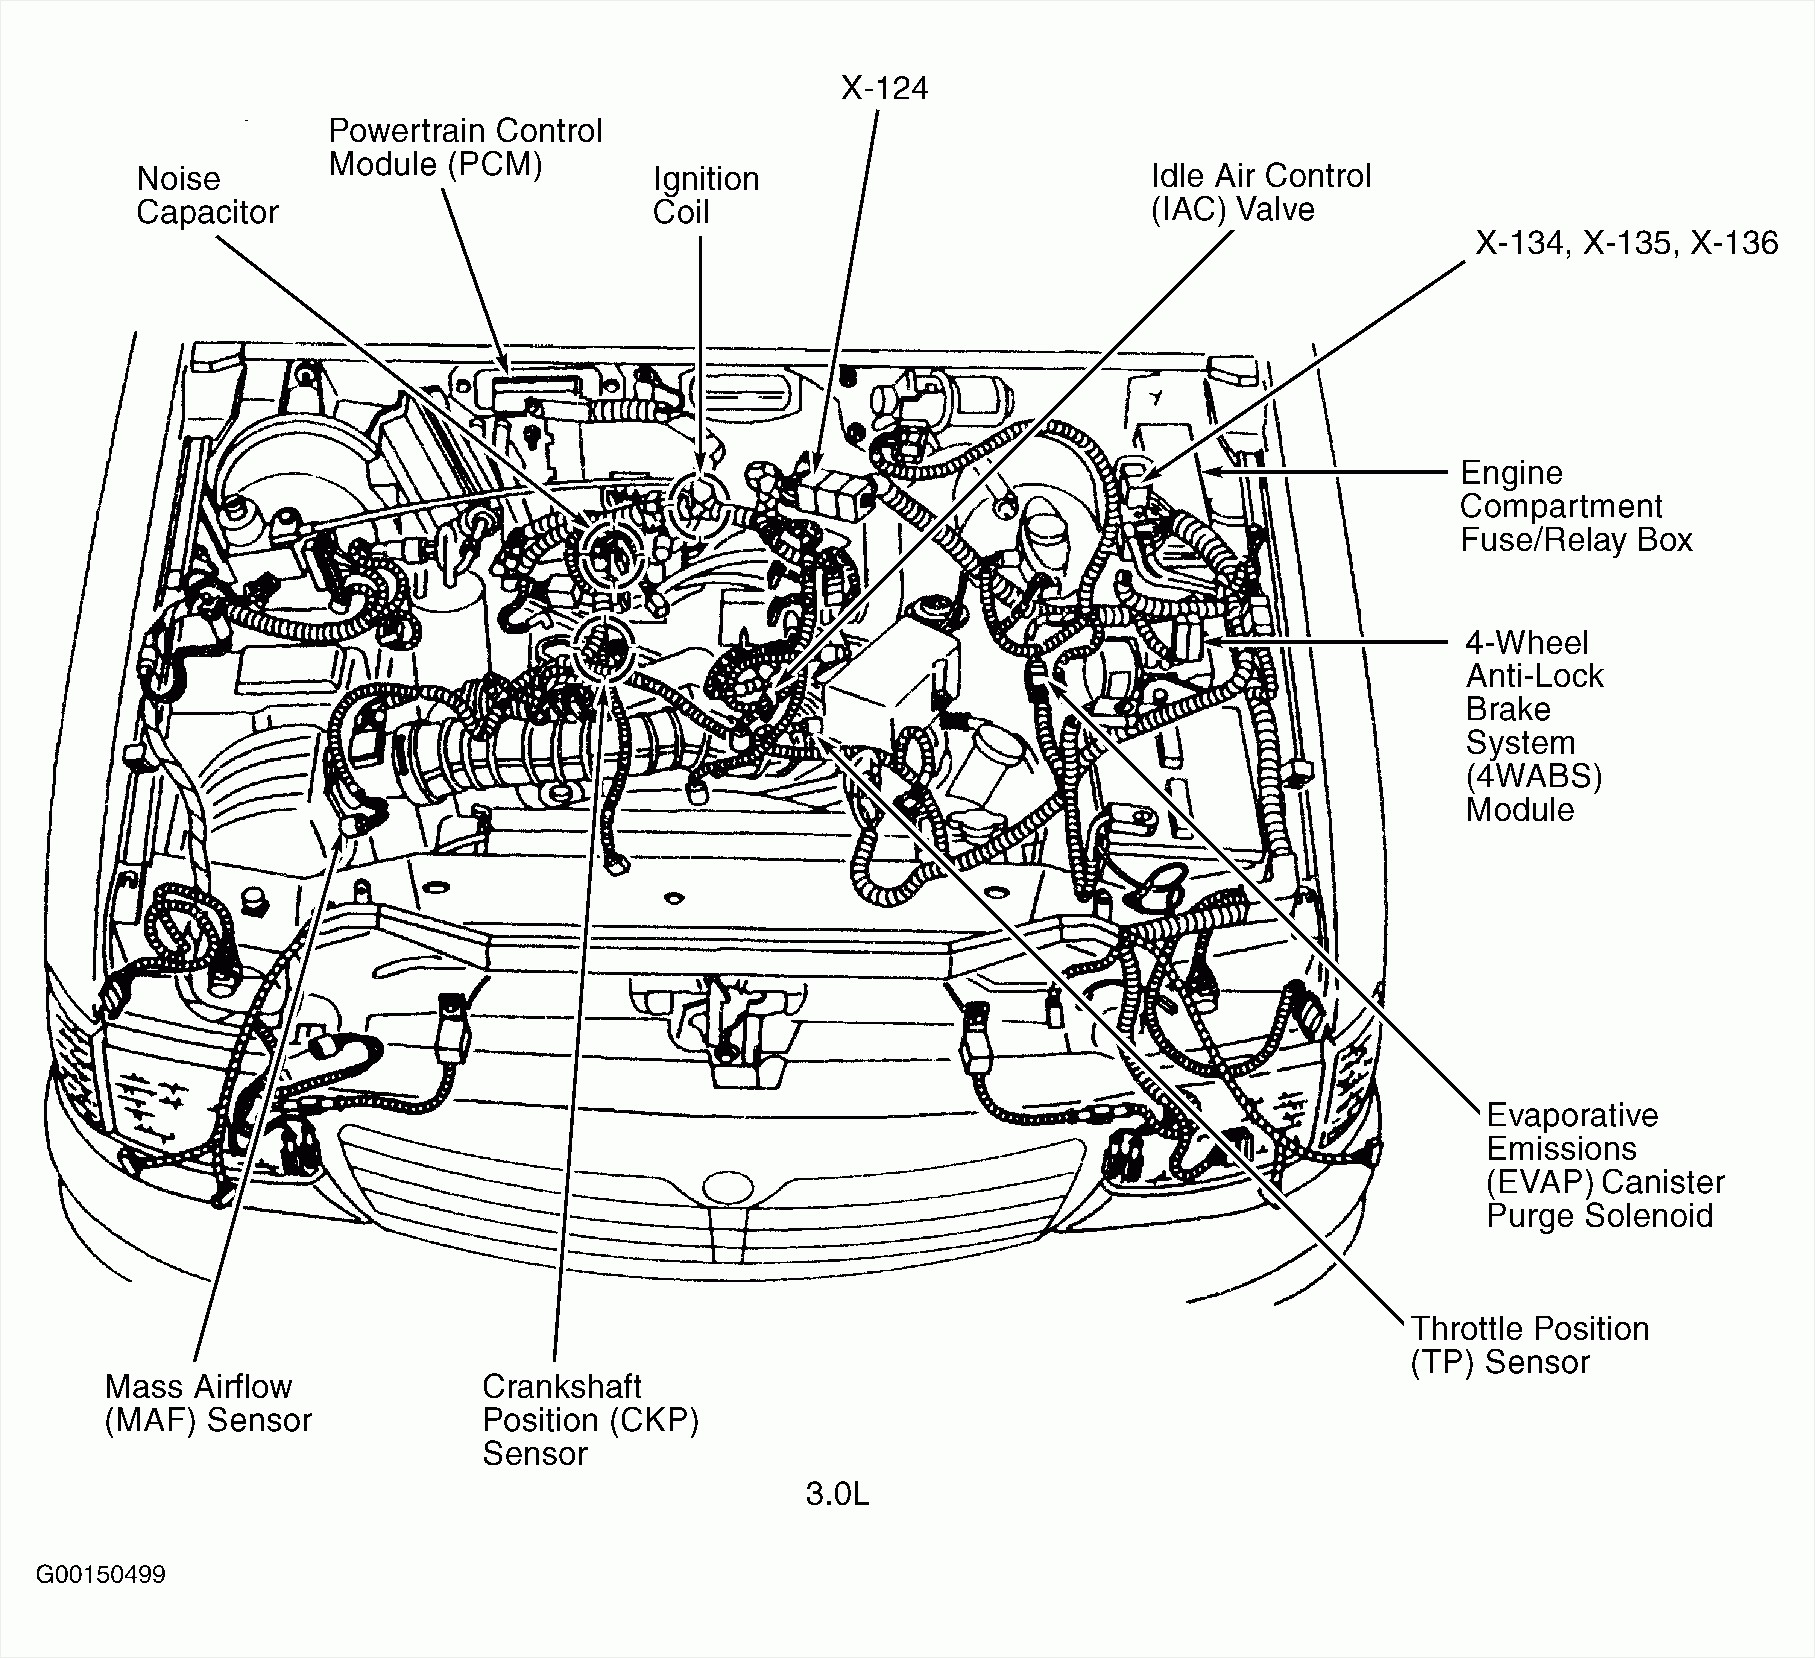 2004 Mazda 6 3 0 Engine Diagram - Wiring Diagrams Dash on